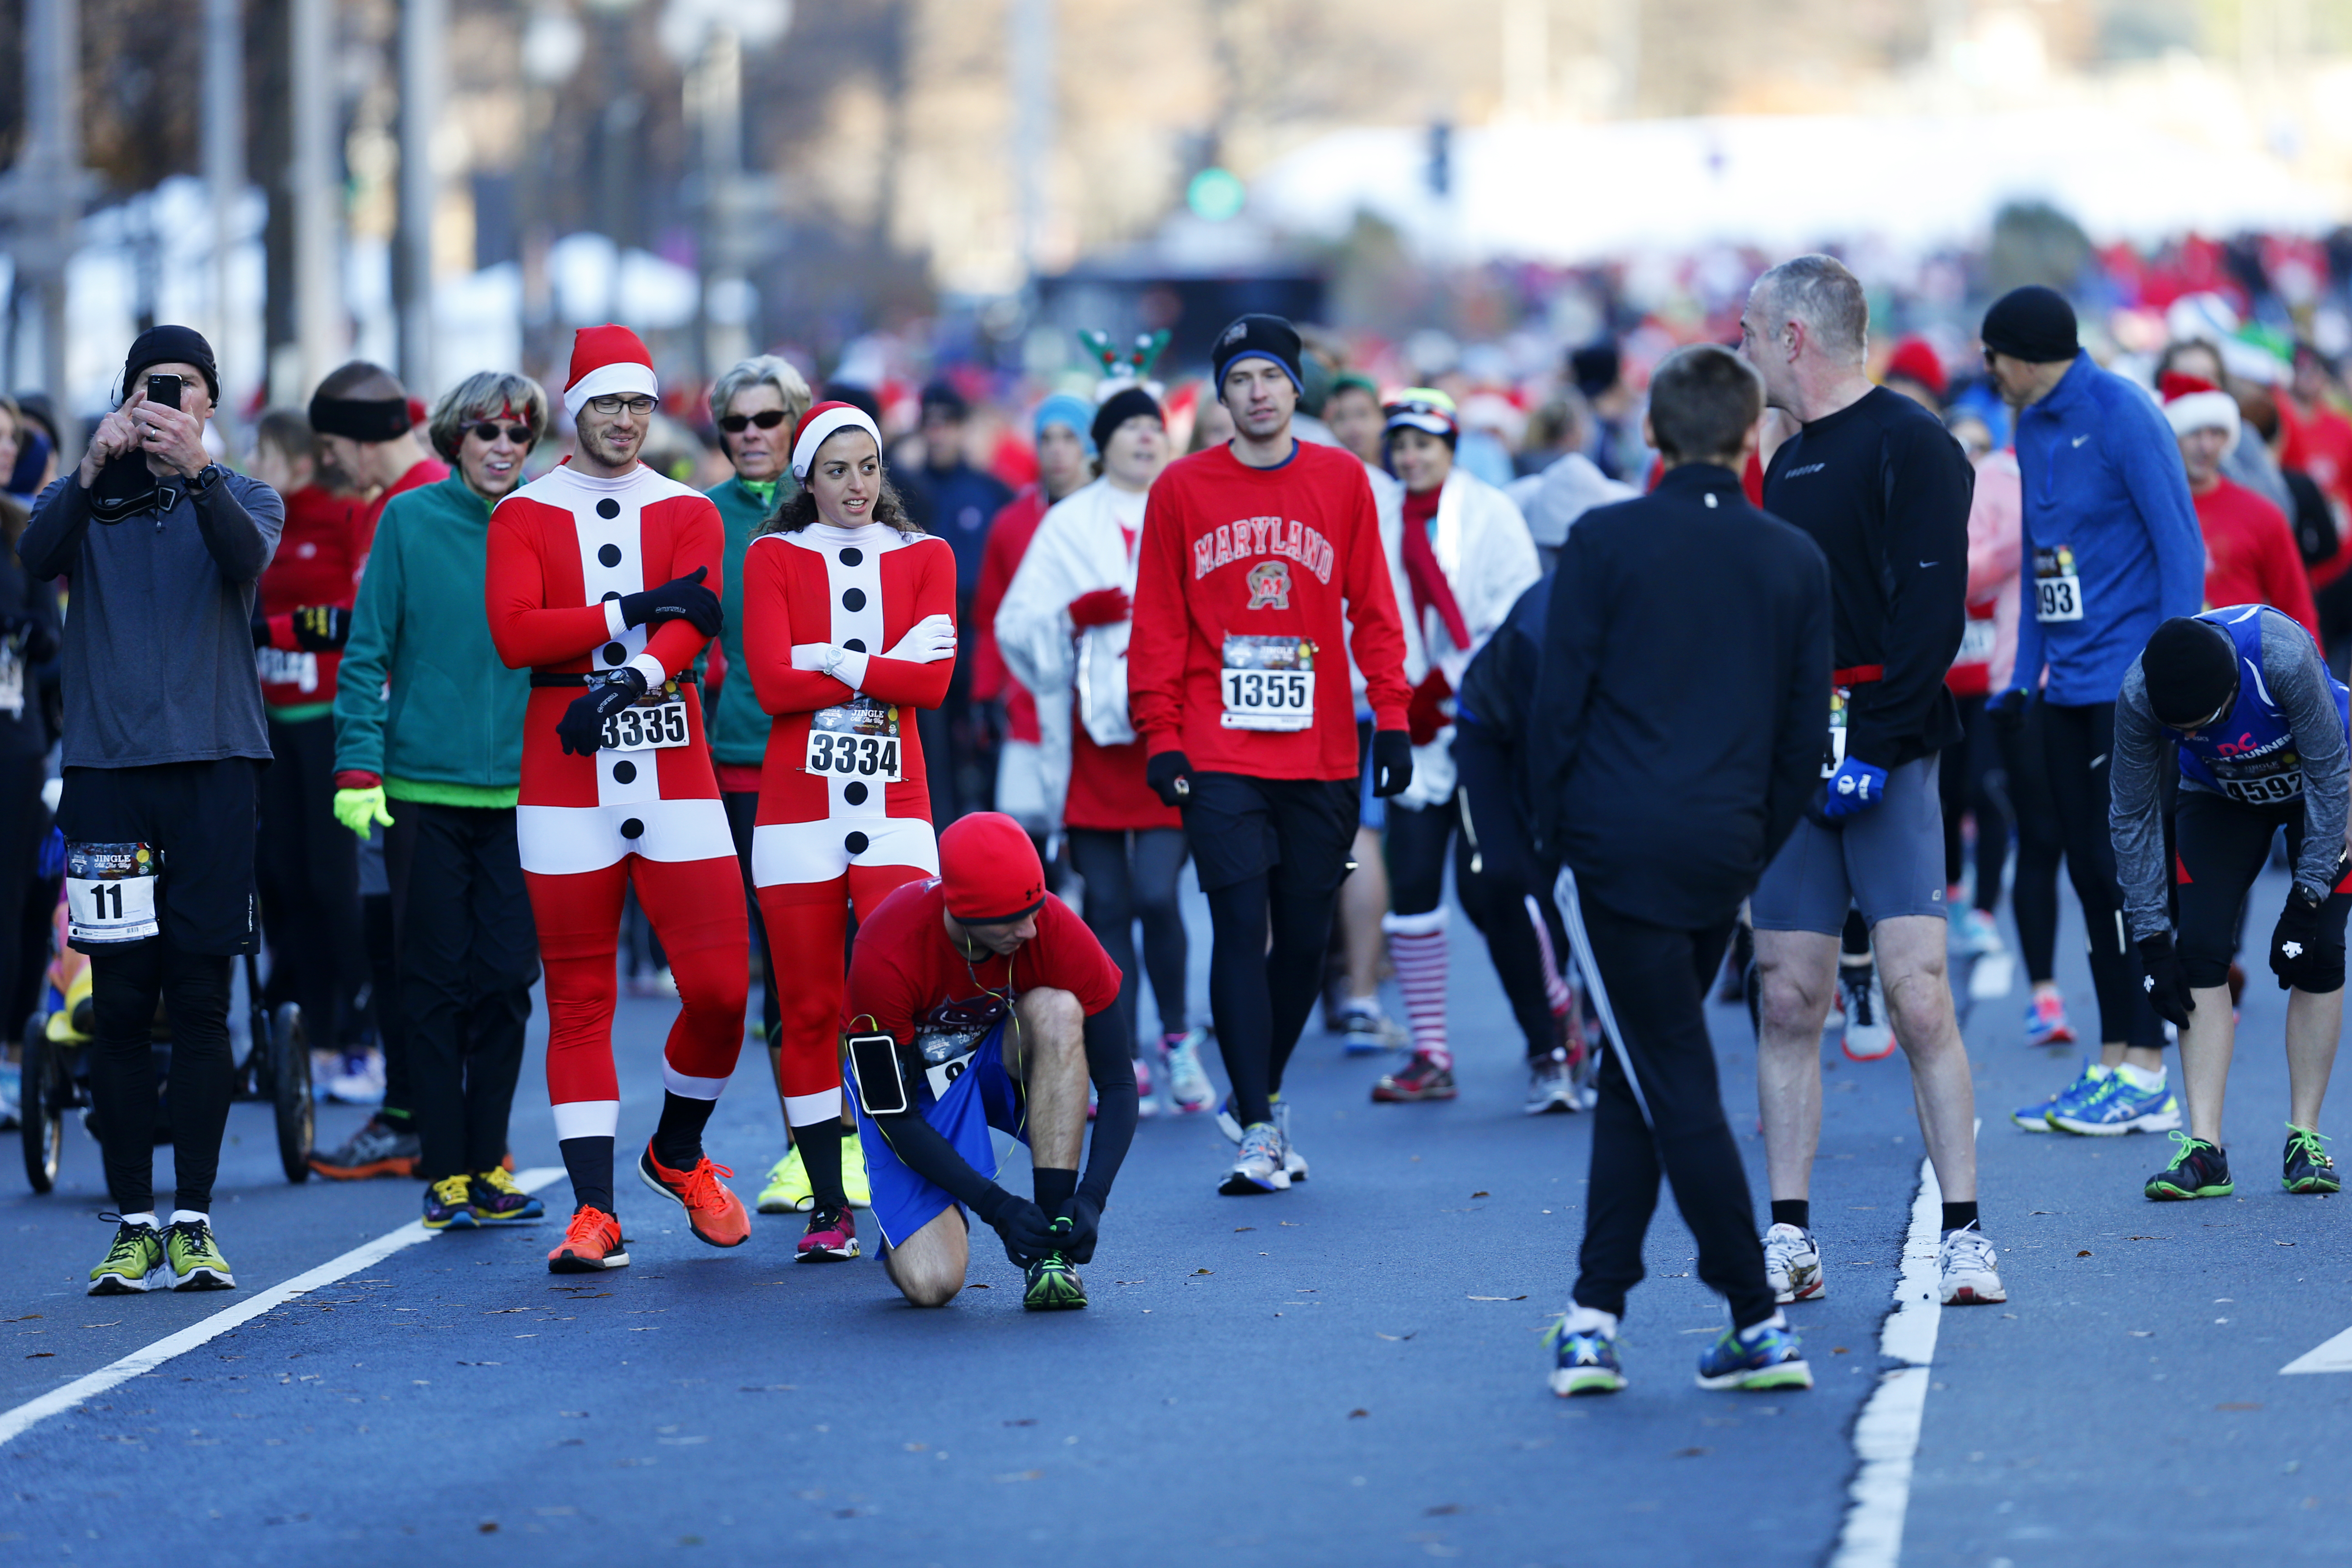 Jingle All the Way 5K brings holiday cheer, street closures to D.C. on Sunday